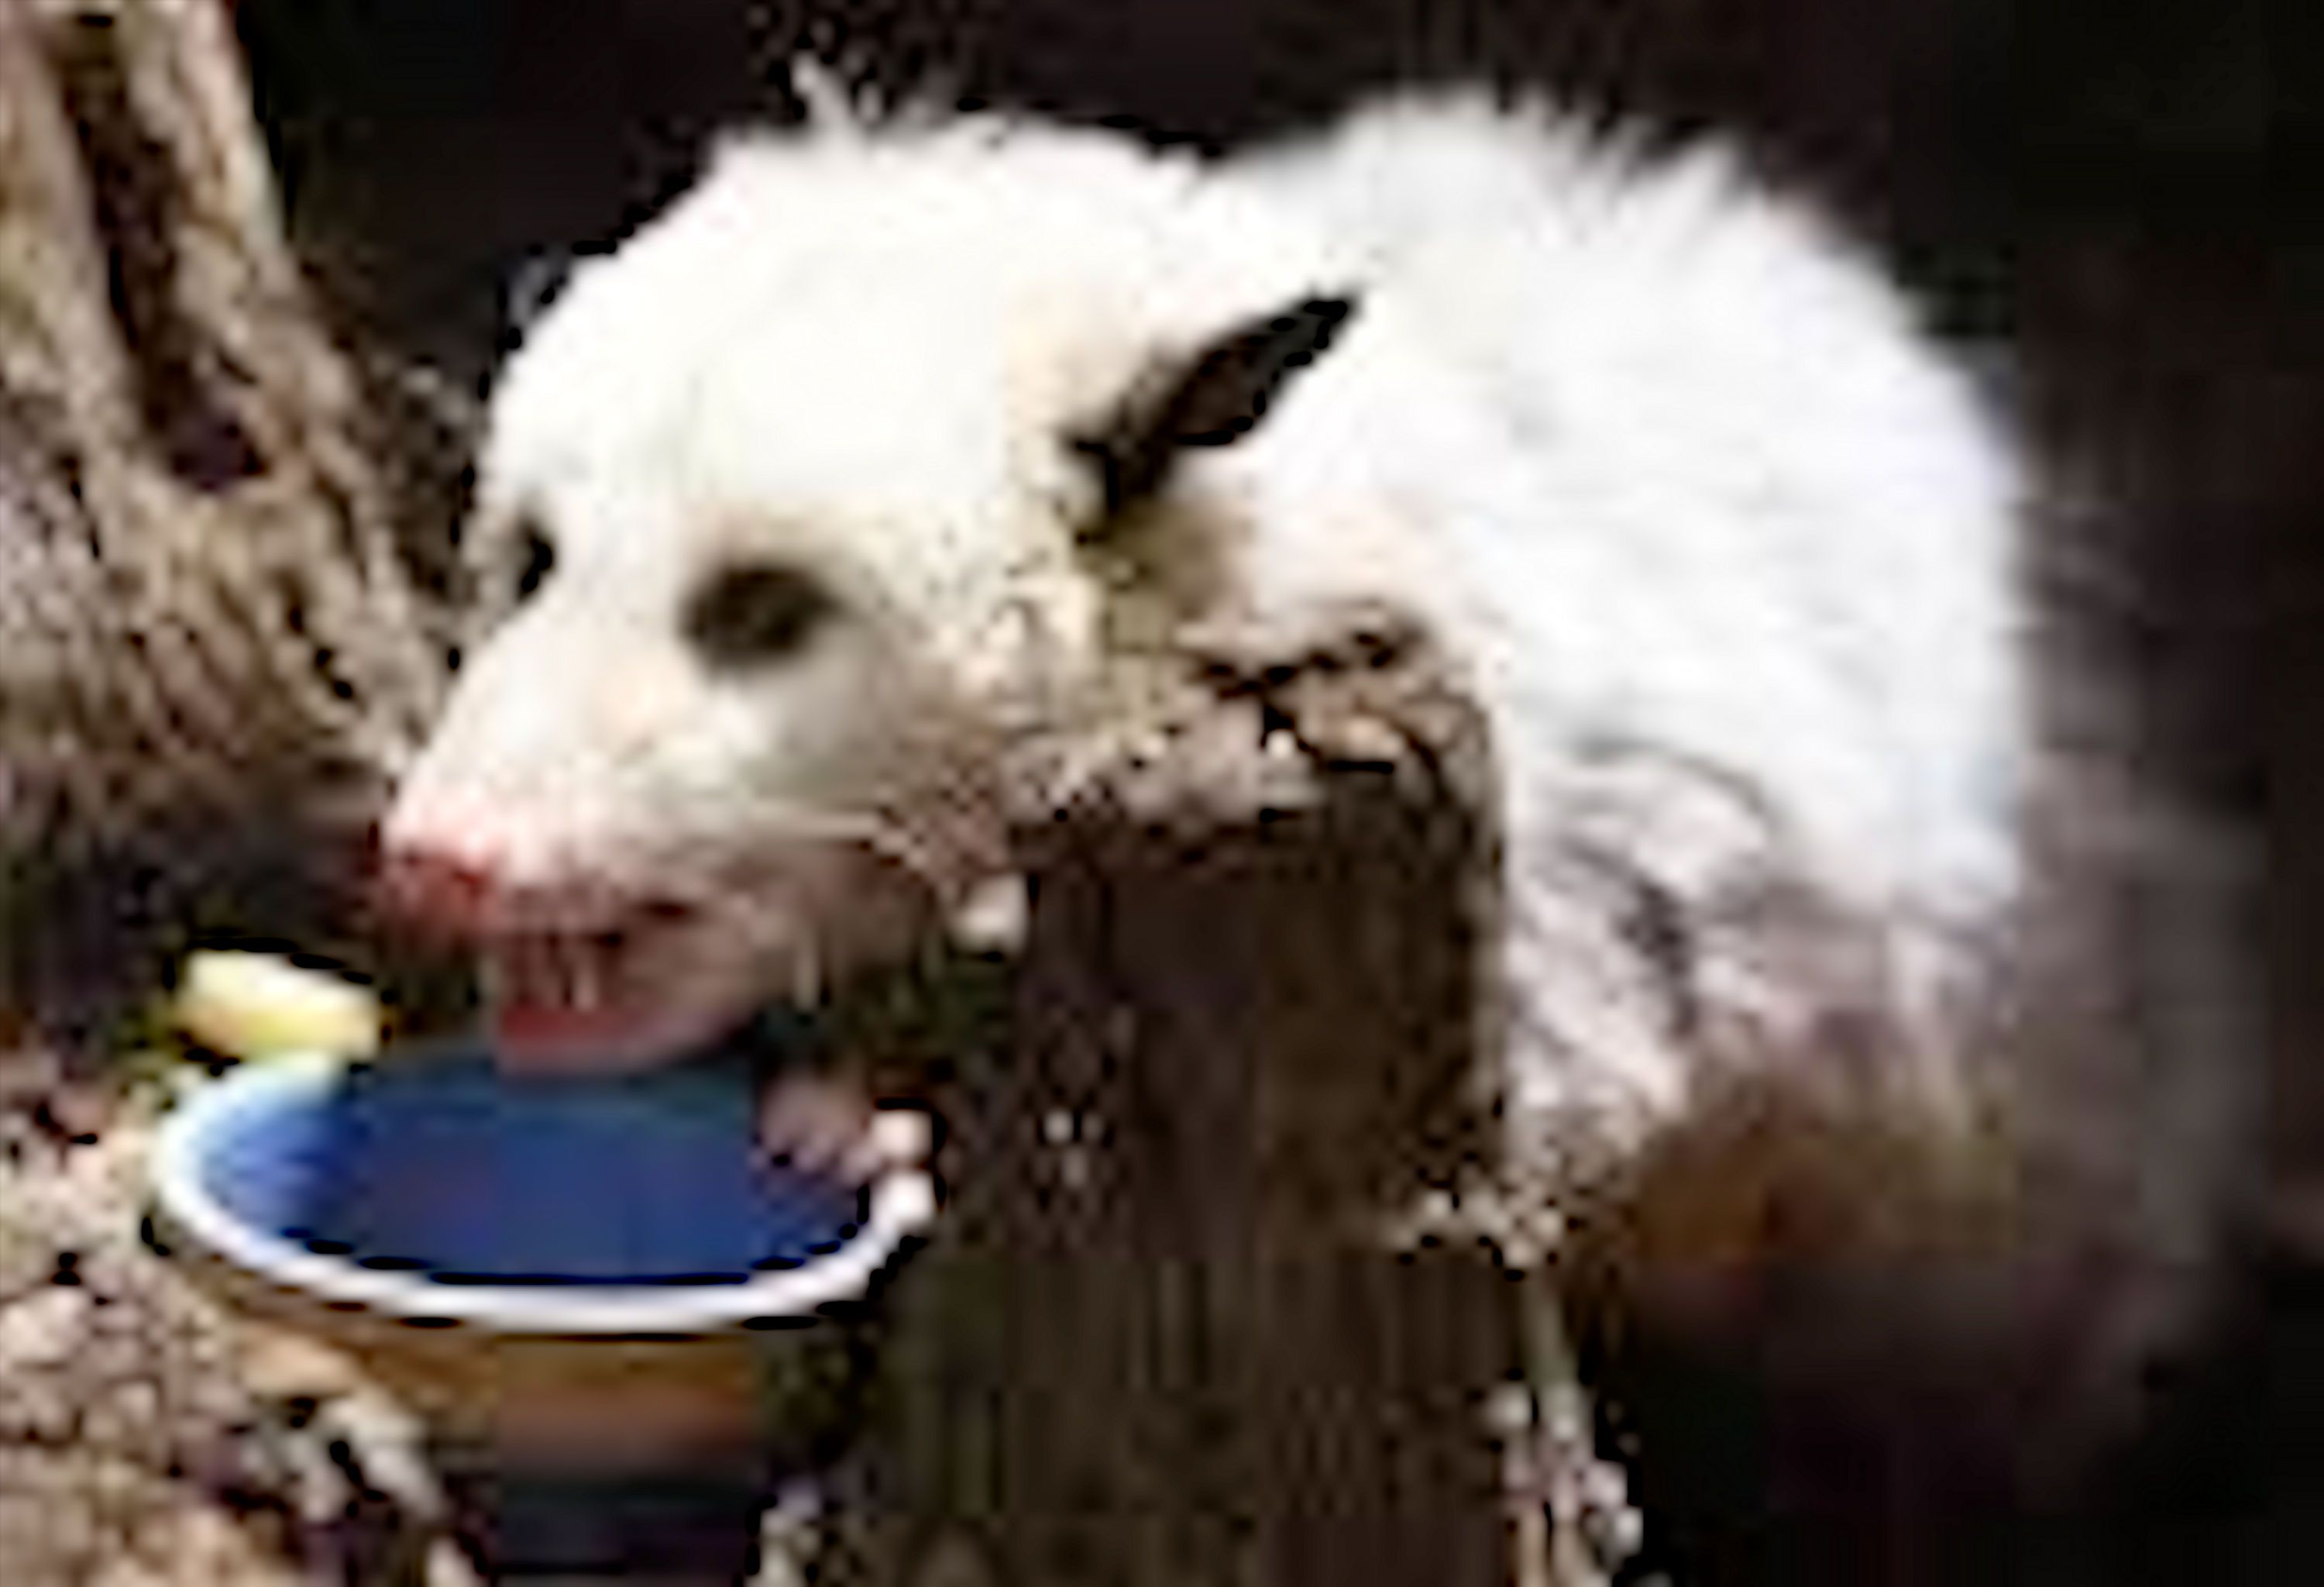 A white opossum just finishing his meal of meat, vegetables